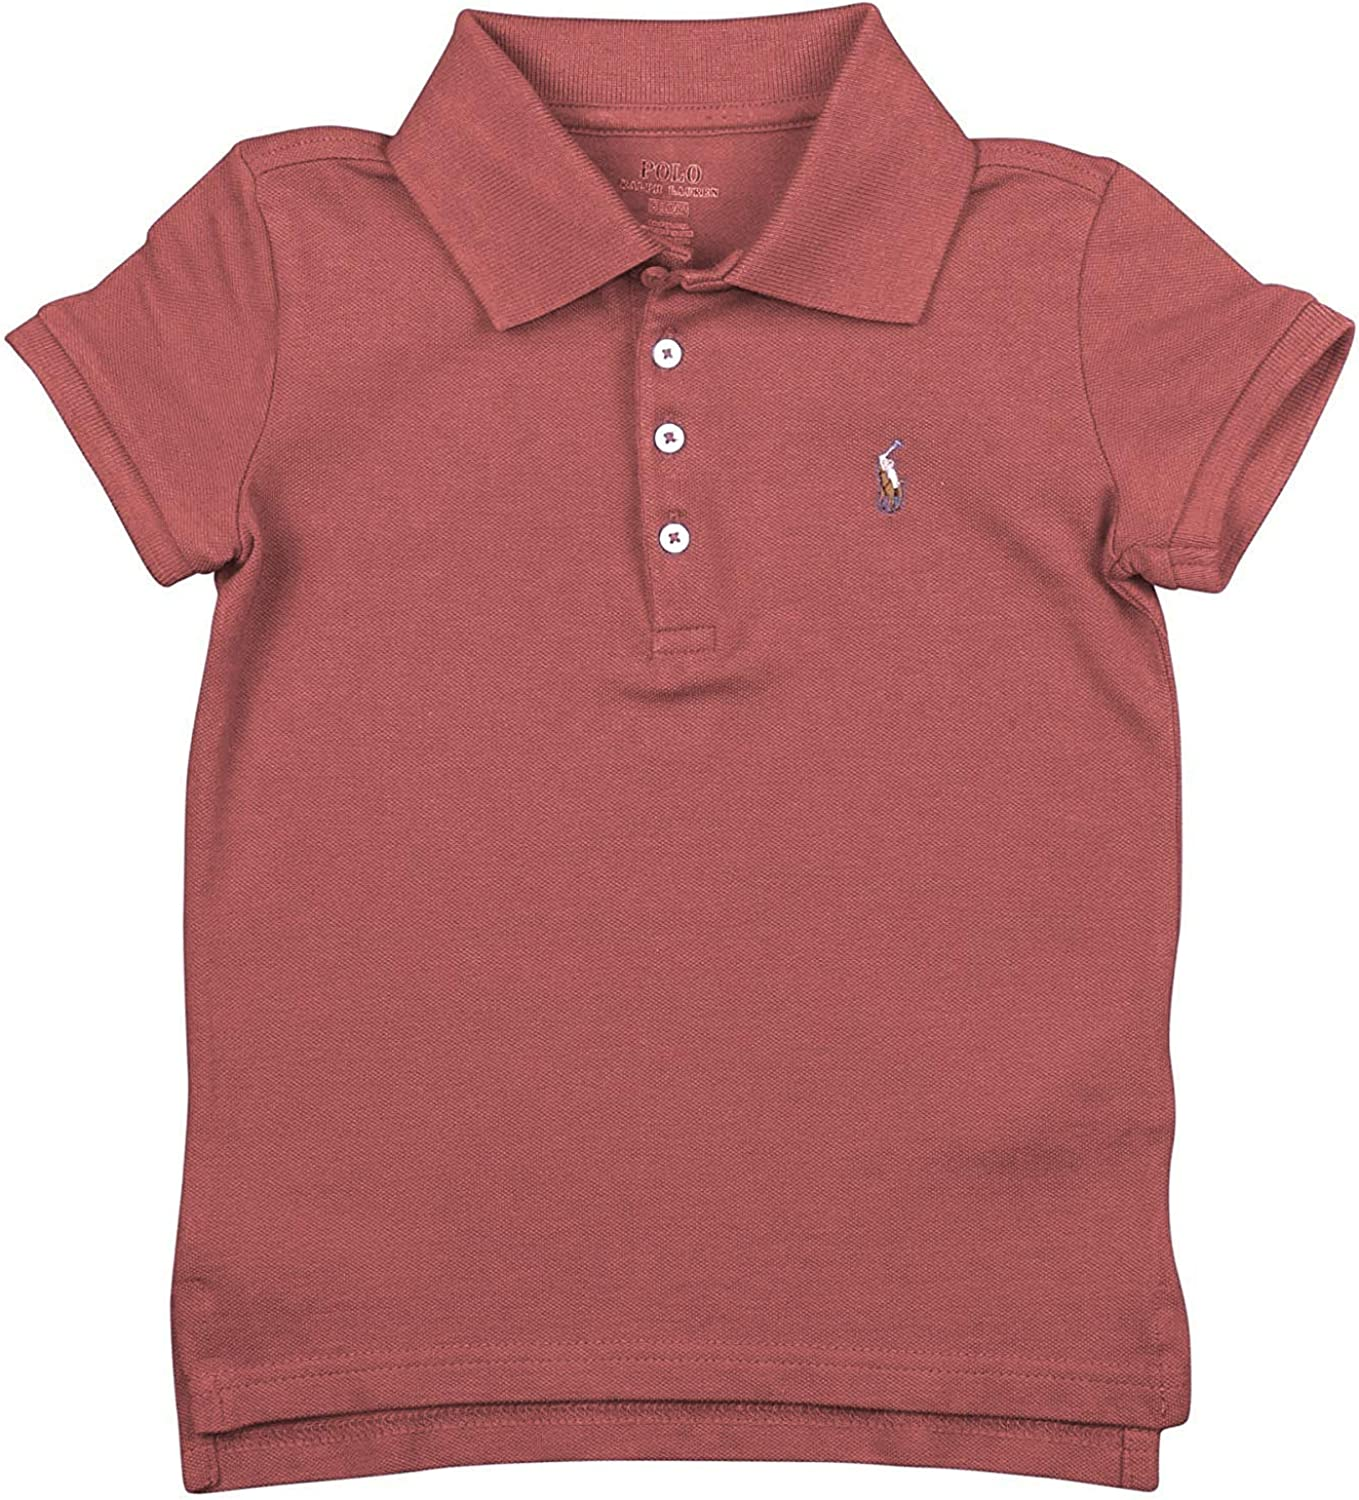 Polo outlet Ralph Lauren Toddlers Girls Lig Shirt 100% Mesh Max 61% OFF Cotton